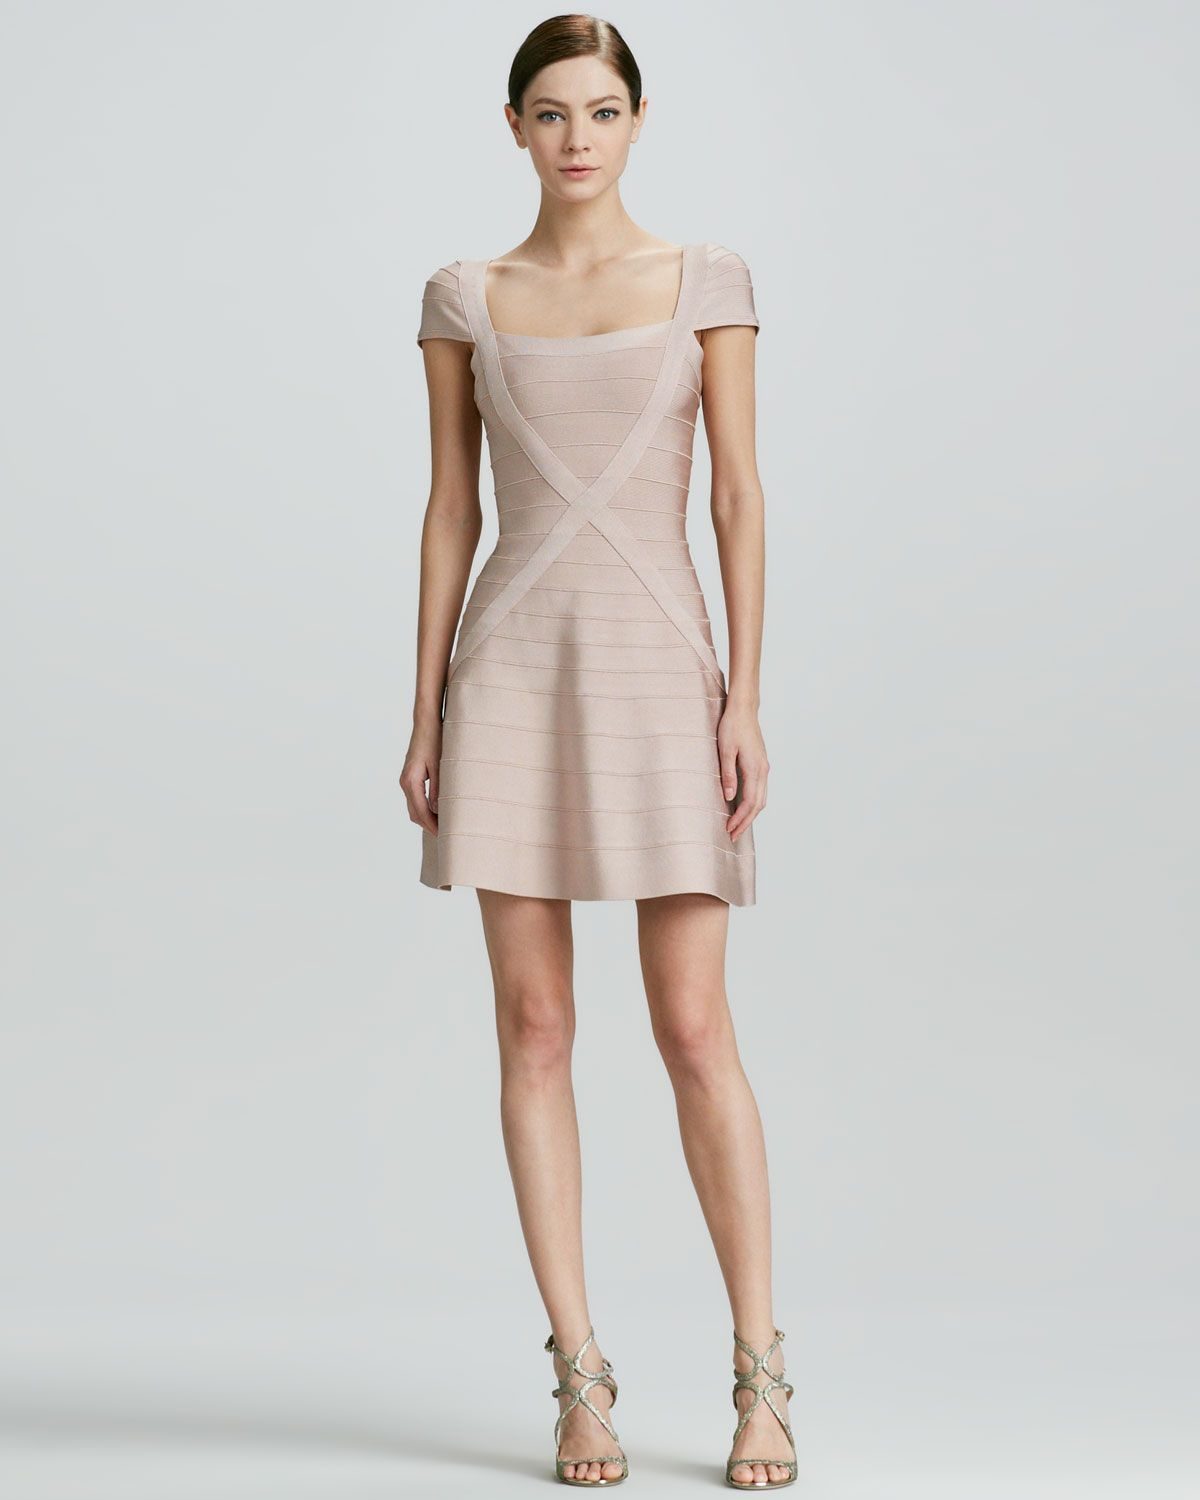 Herve Leger X-Front Bandage Dress with Flared Skirt - Neiman Marcus ...